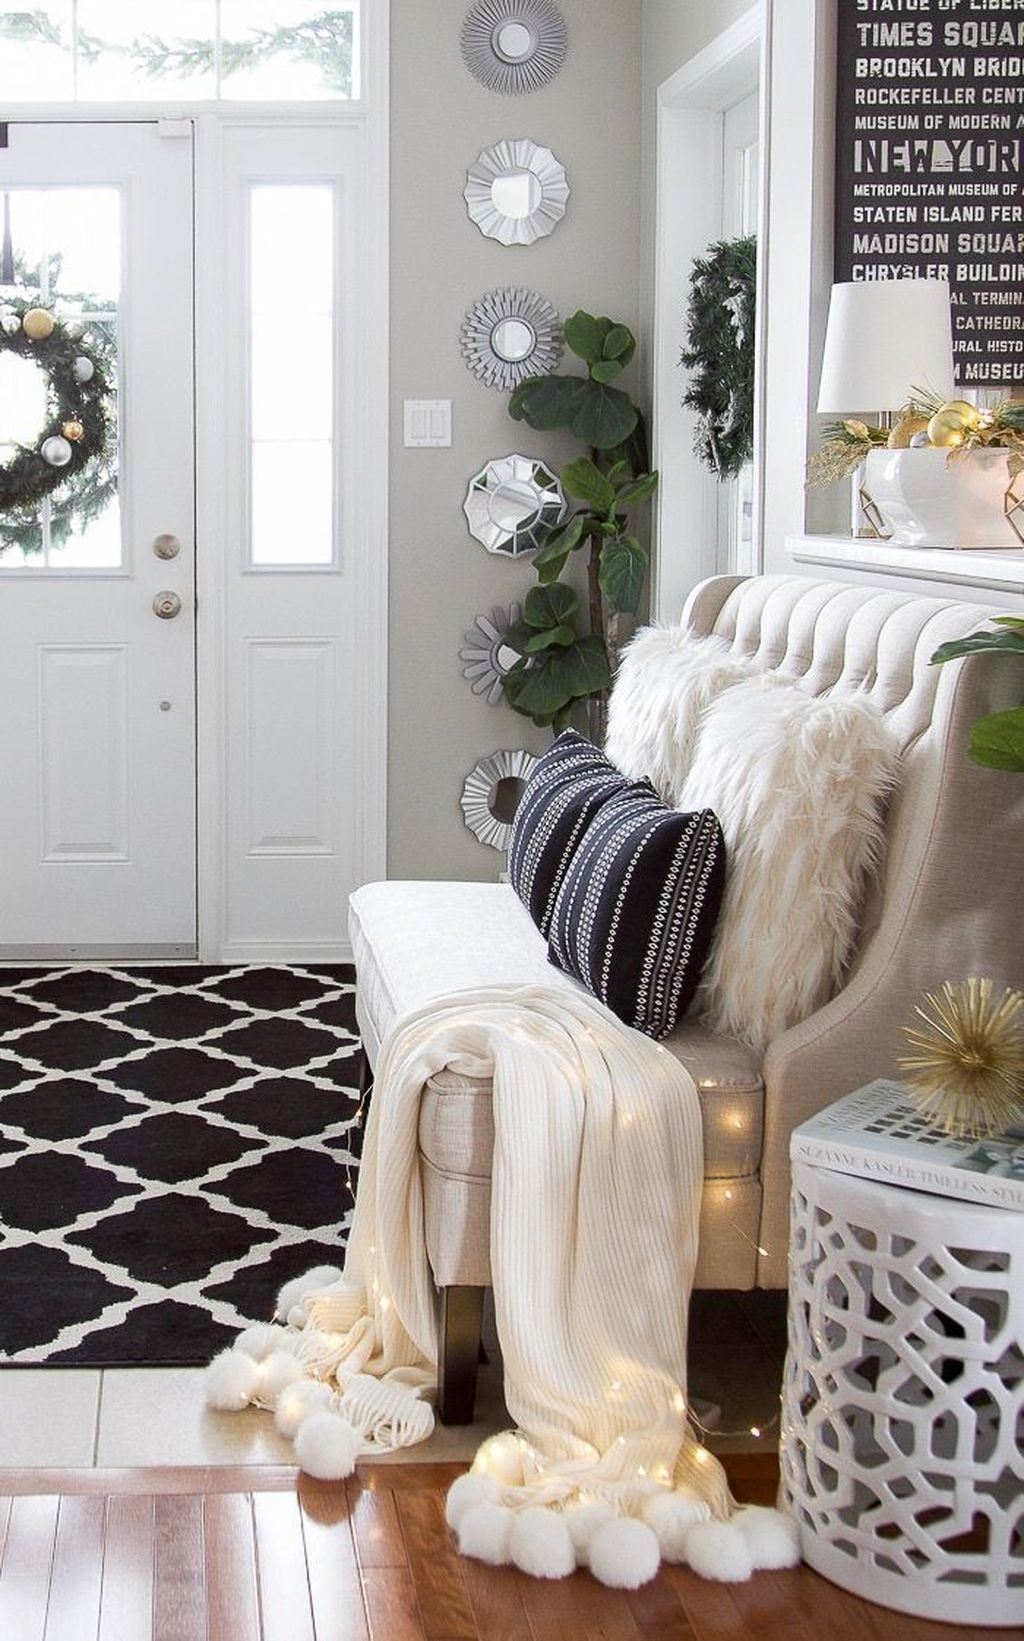 Splendid Entryway Home Décor Ideas That Make Your Place Look Cool 25